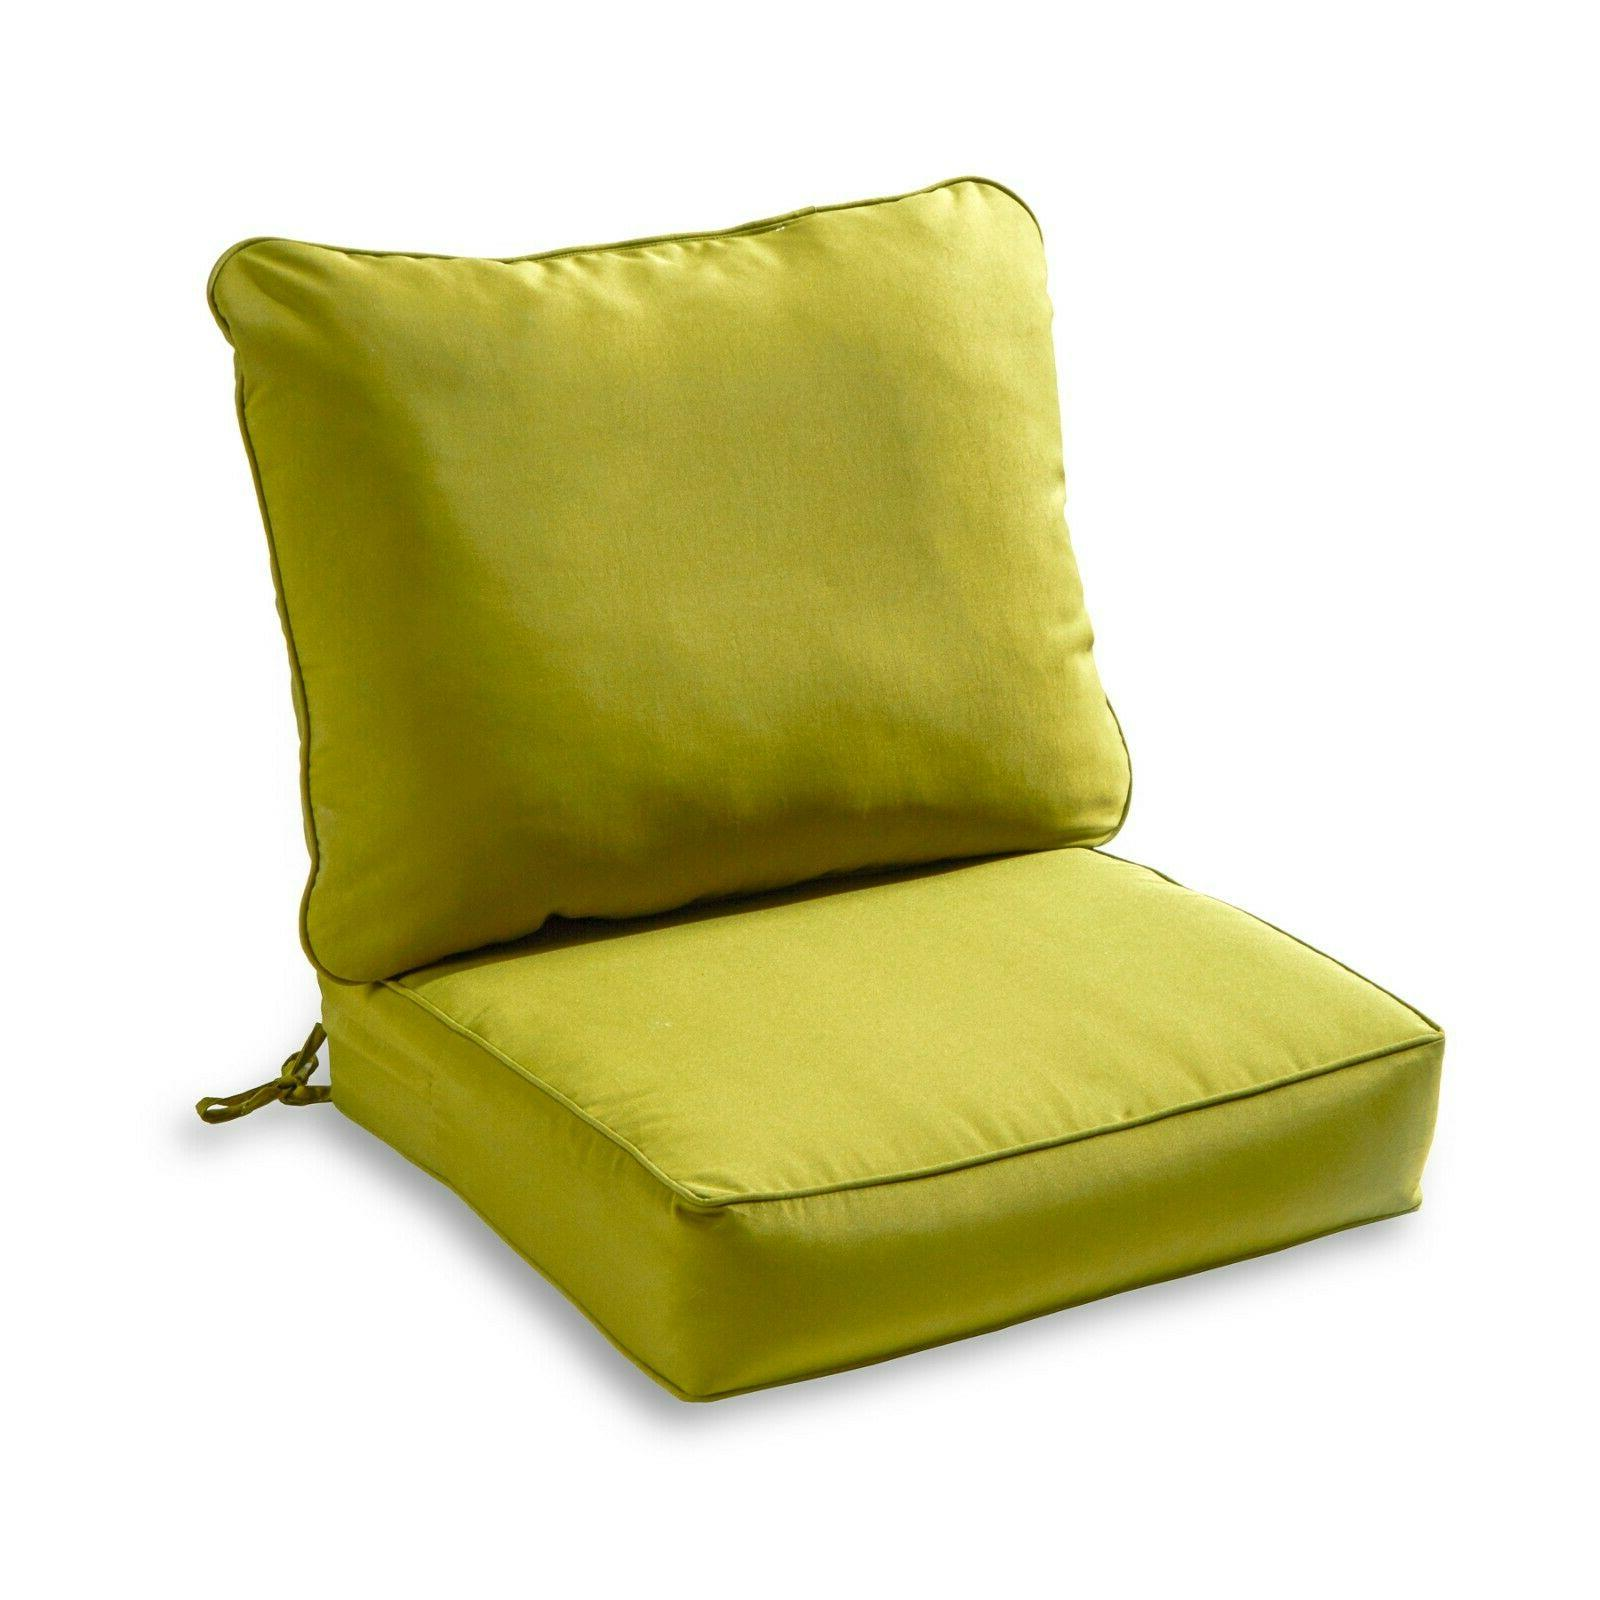 Outdoor Cushion Green Replacement for